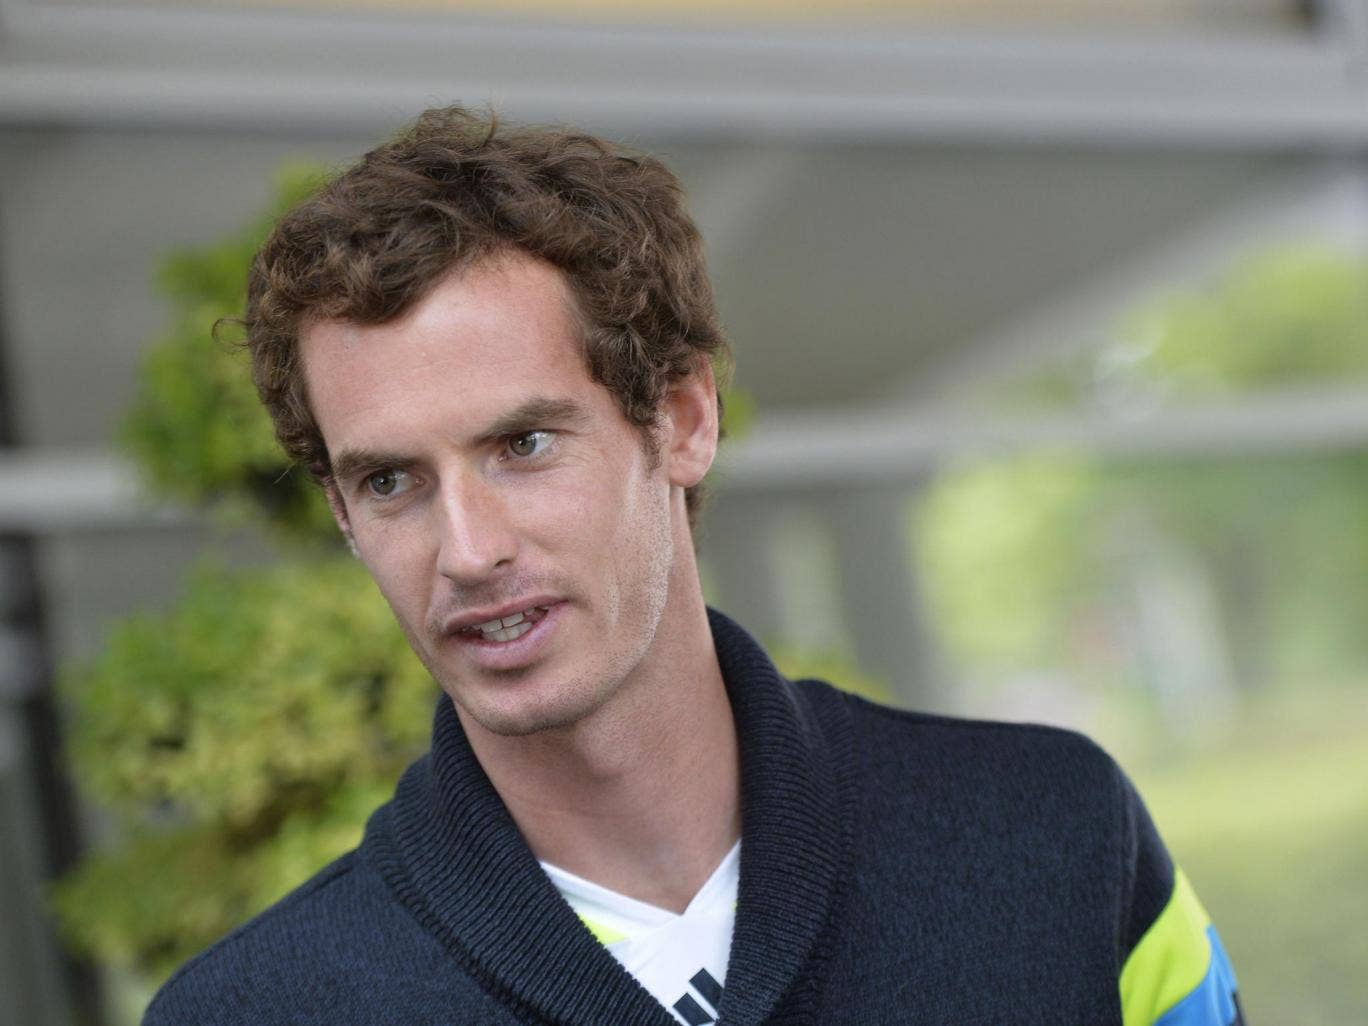 Andy Murray will face Andrey Golubev, the world No 55 in the first round